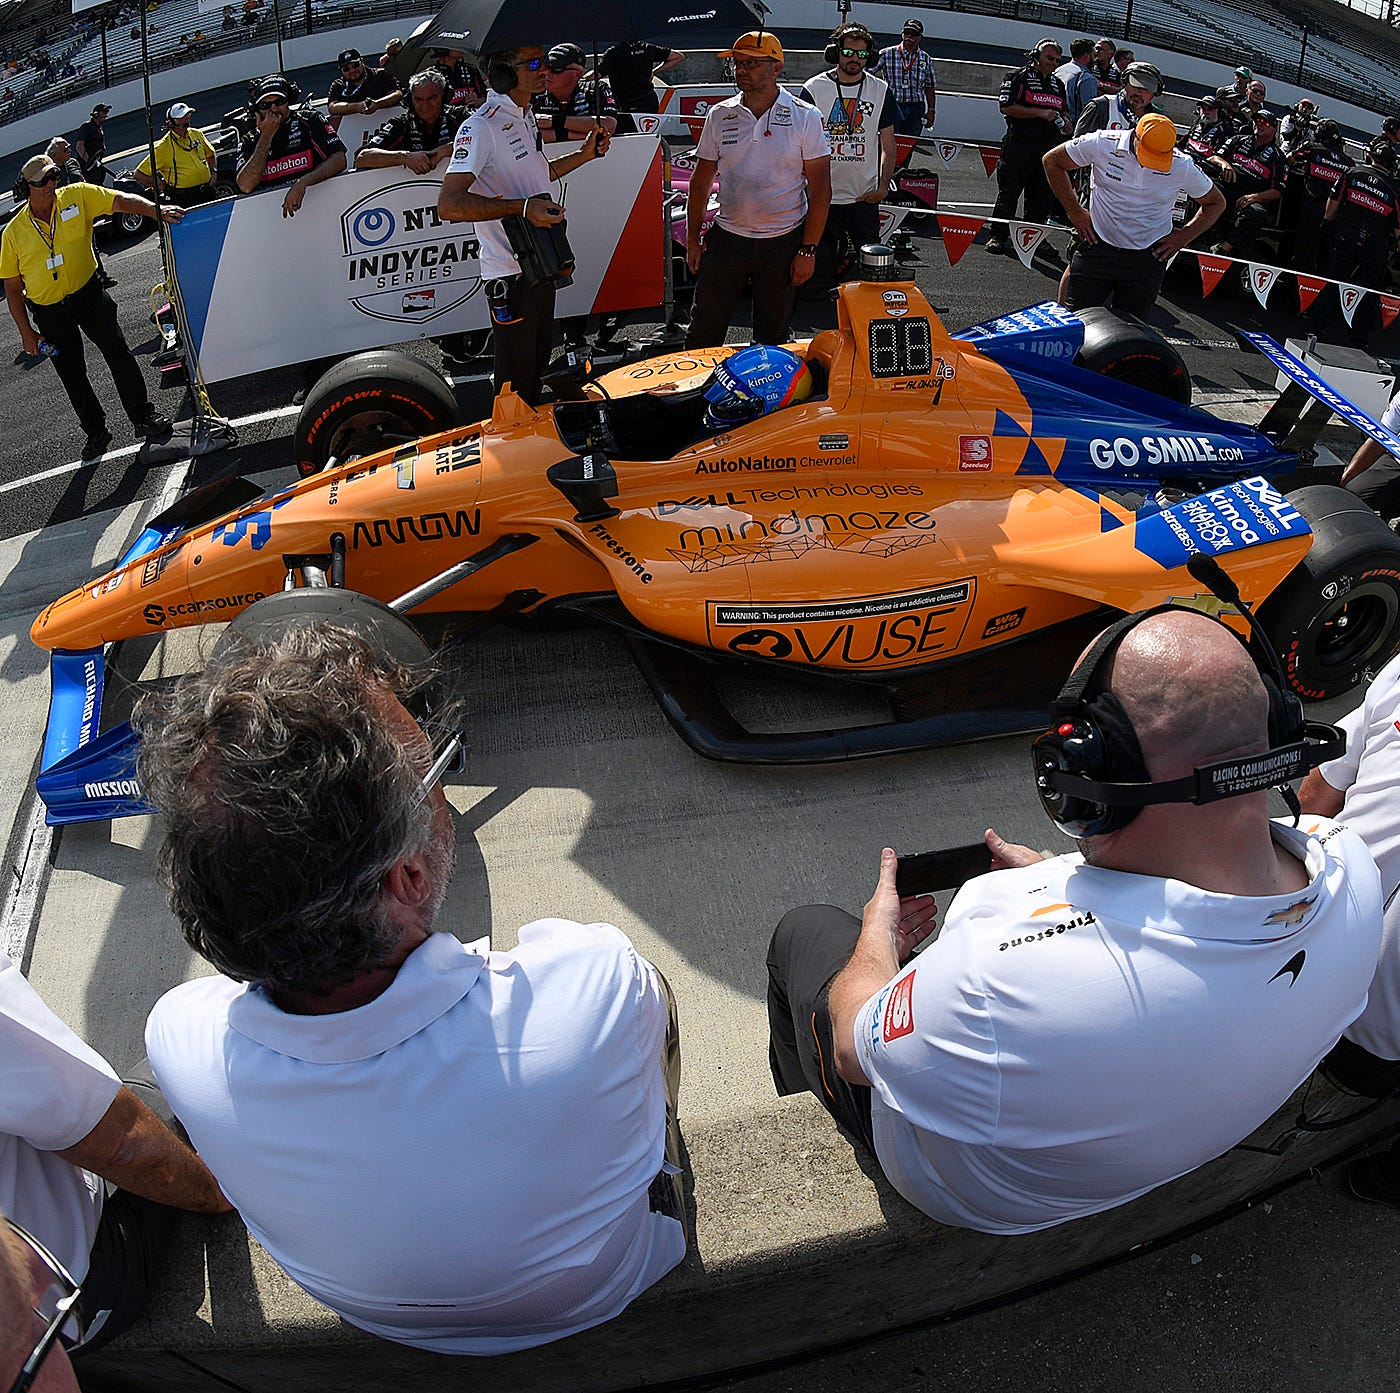 McLaren Indy fires team president in wake of Fernando Alonso's Indy 500 failure